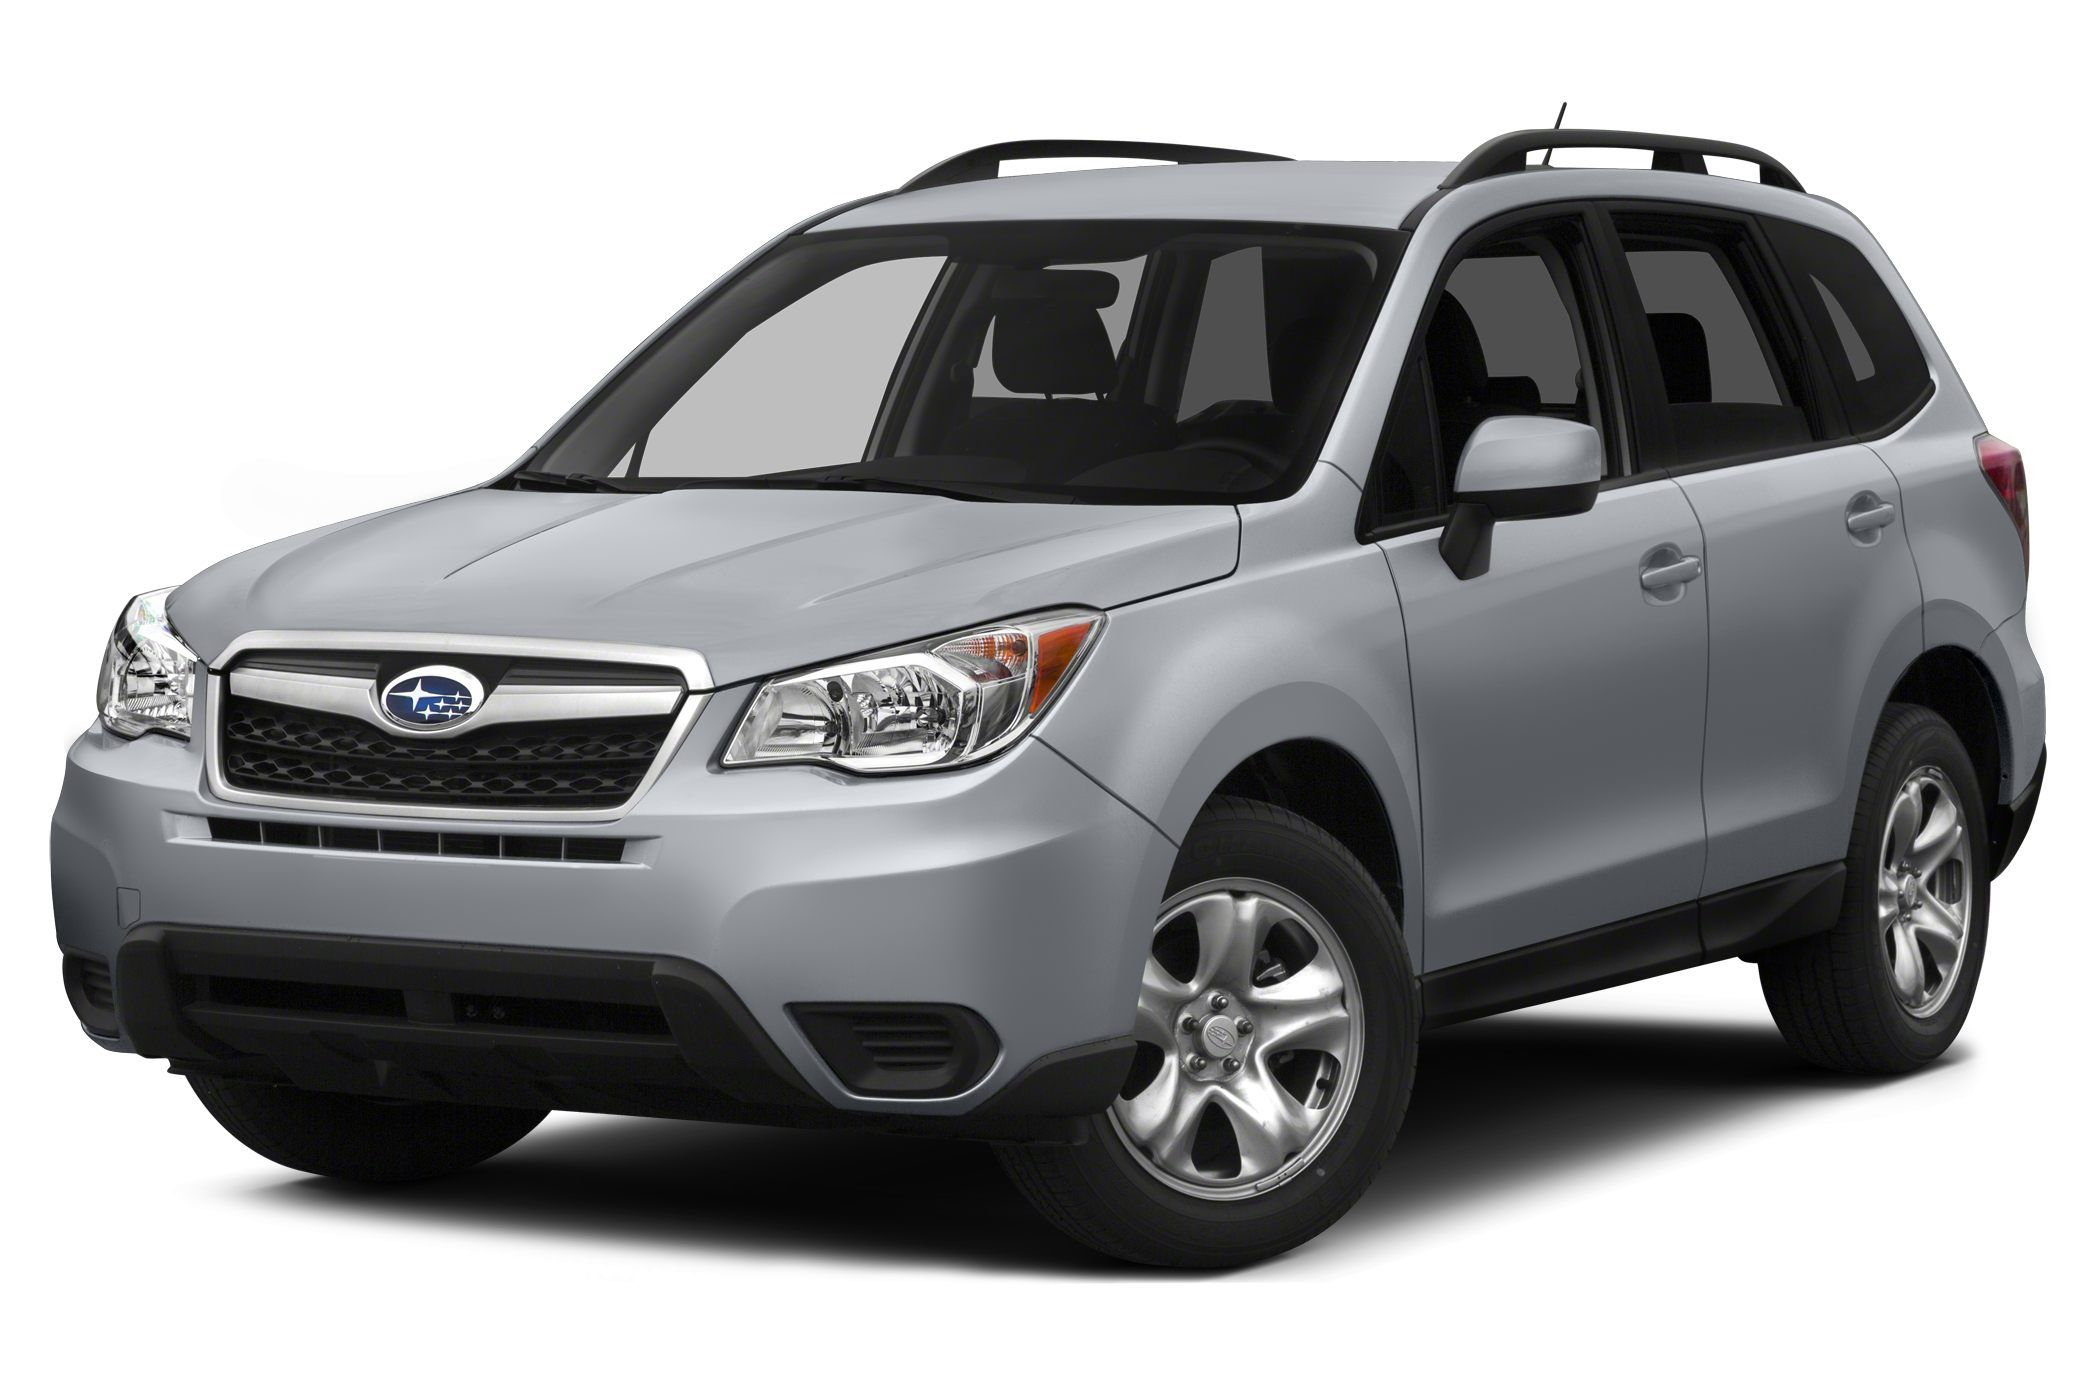 Subaru Forester 2015 Image HD Wallpapers